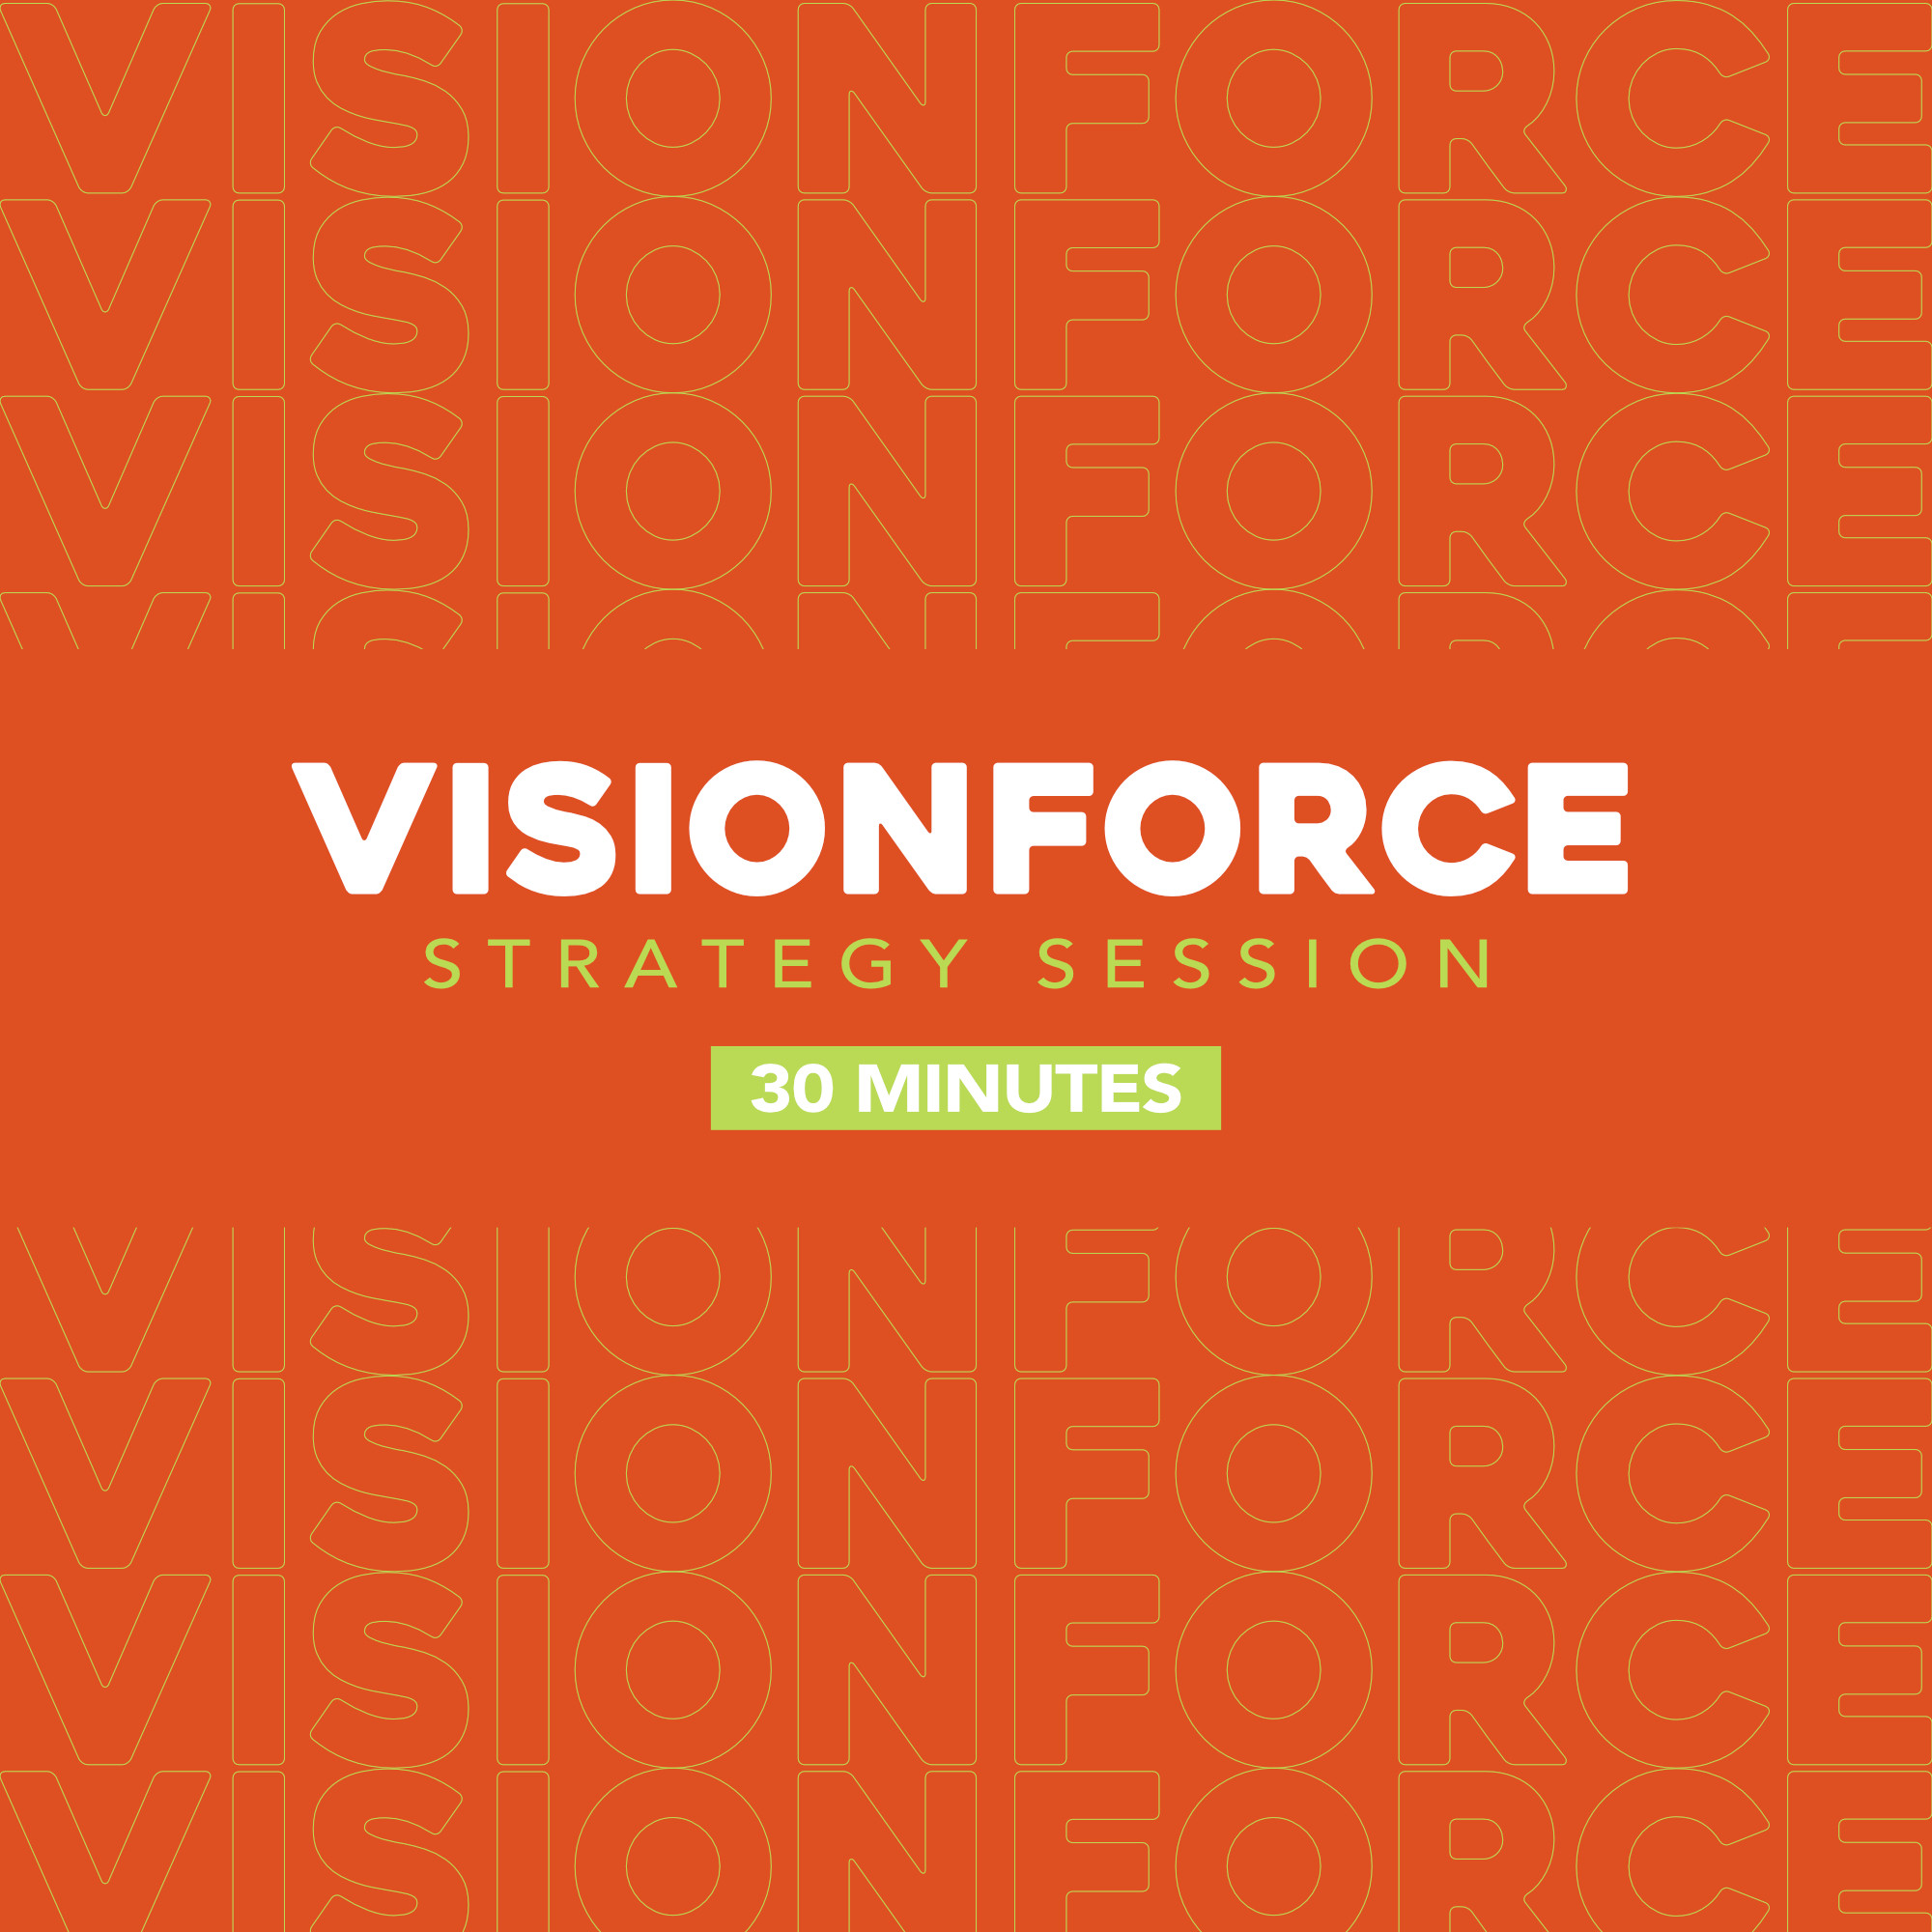 VisionForce 30 min Strategy Session